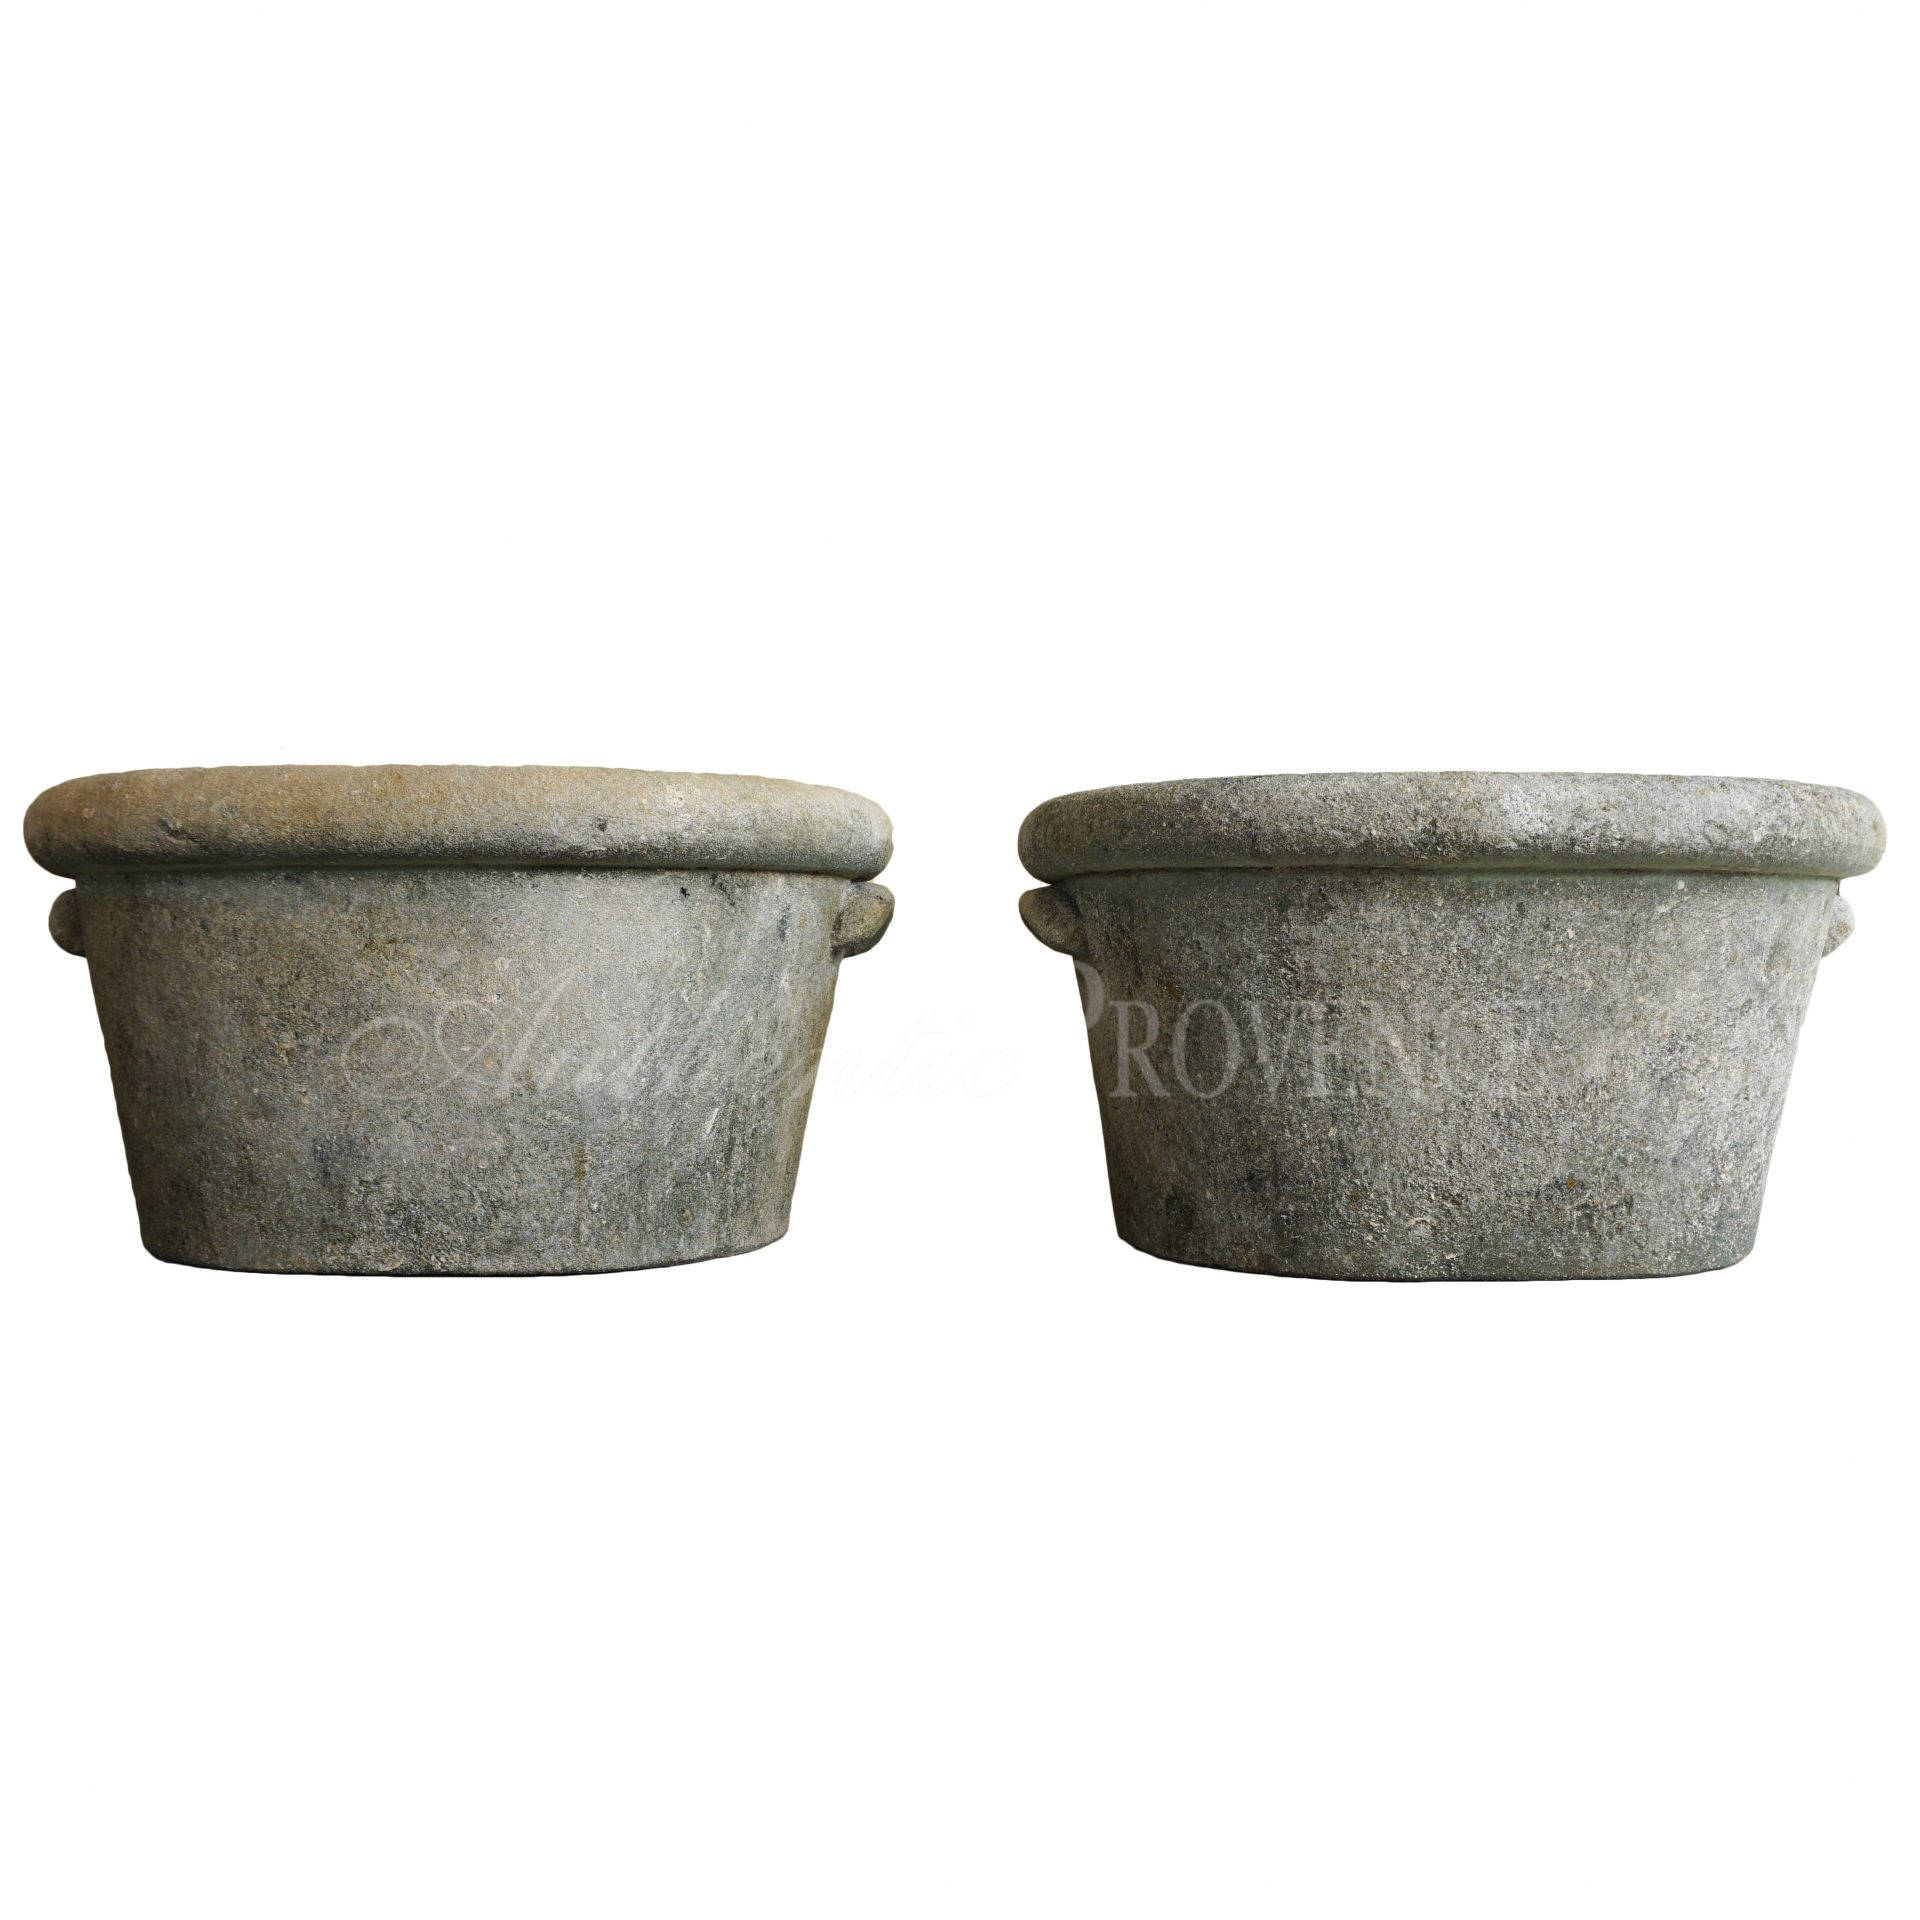 Pair of Cecile Planters